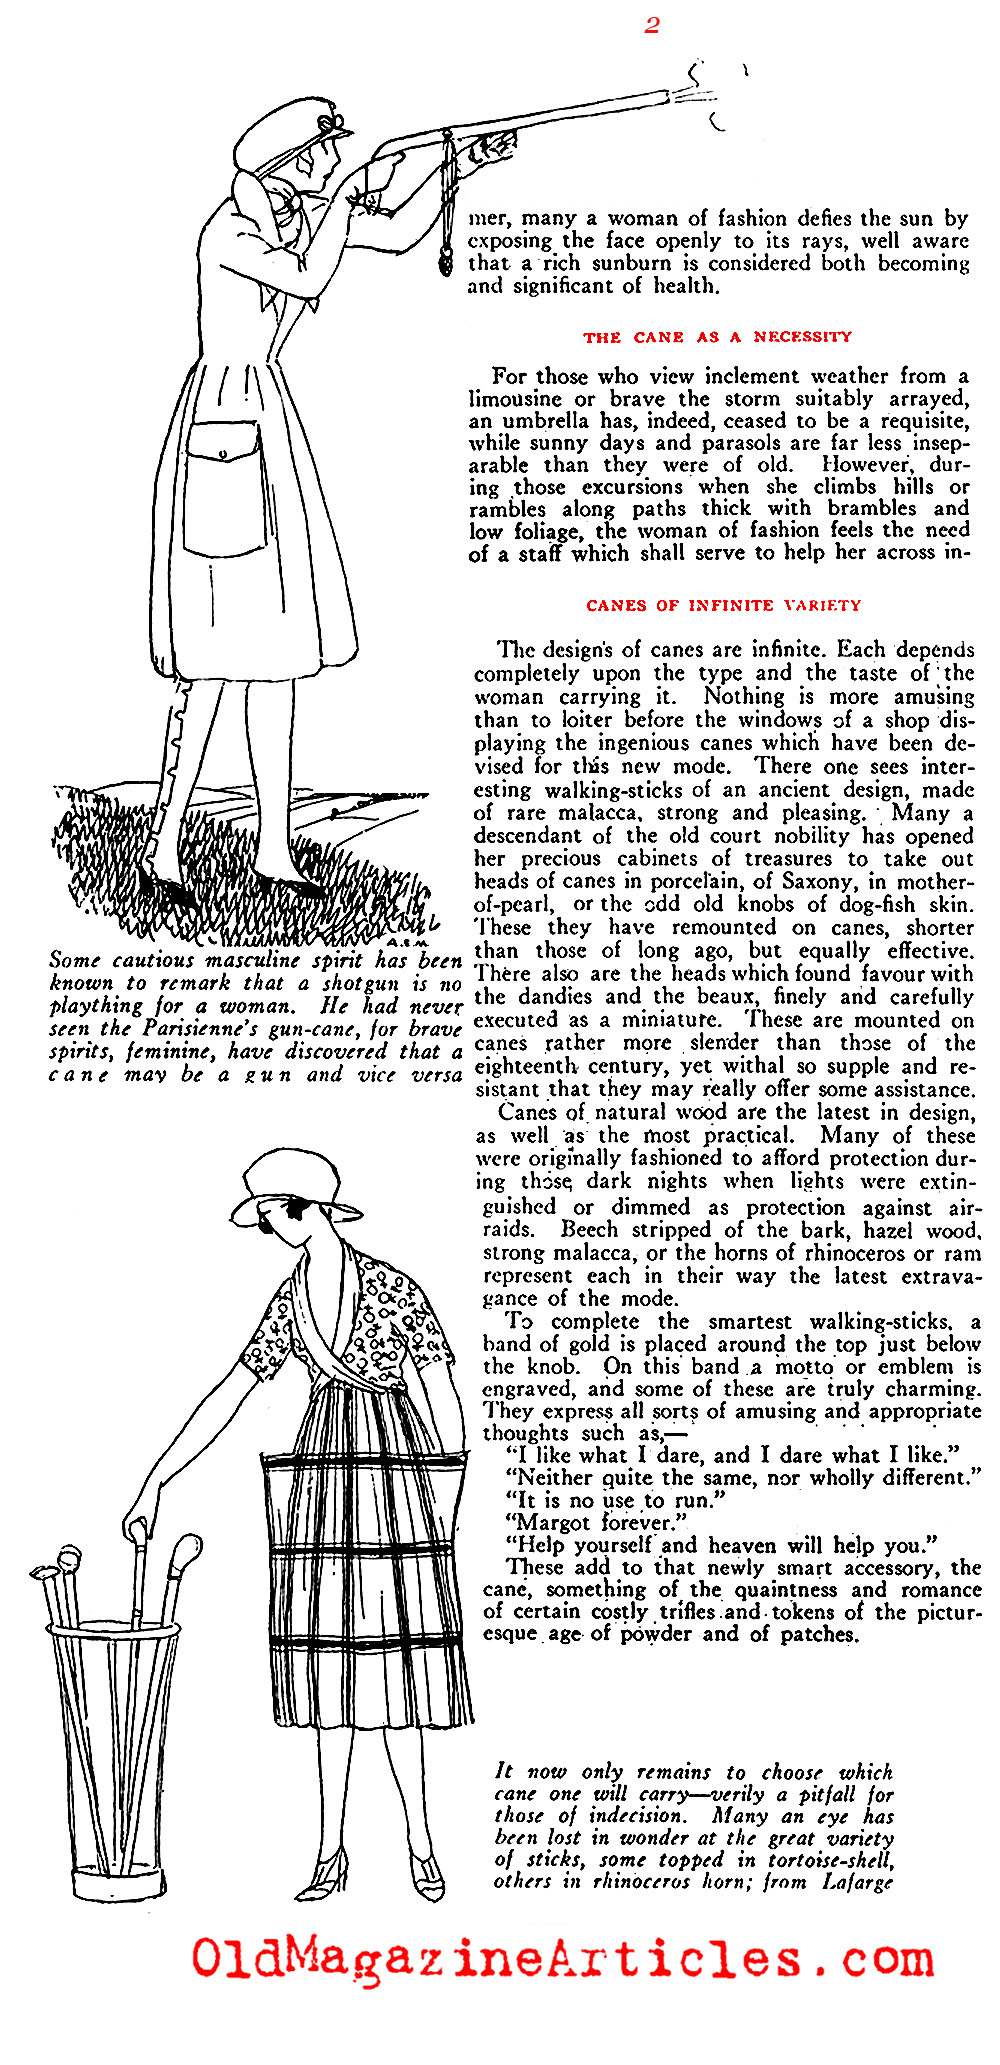 Paris Puts a Stick in the Mode...(Vogue Magazine, 1919)